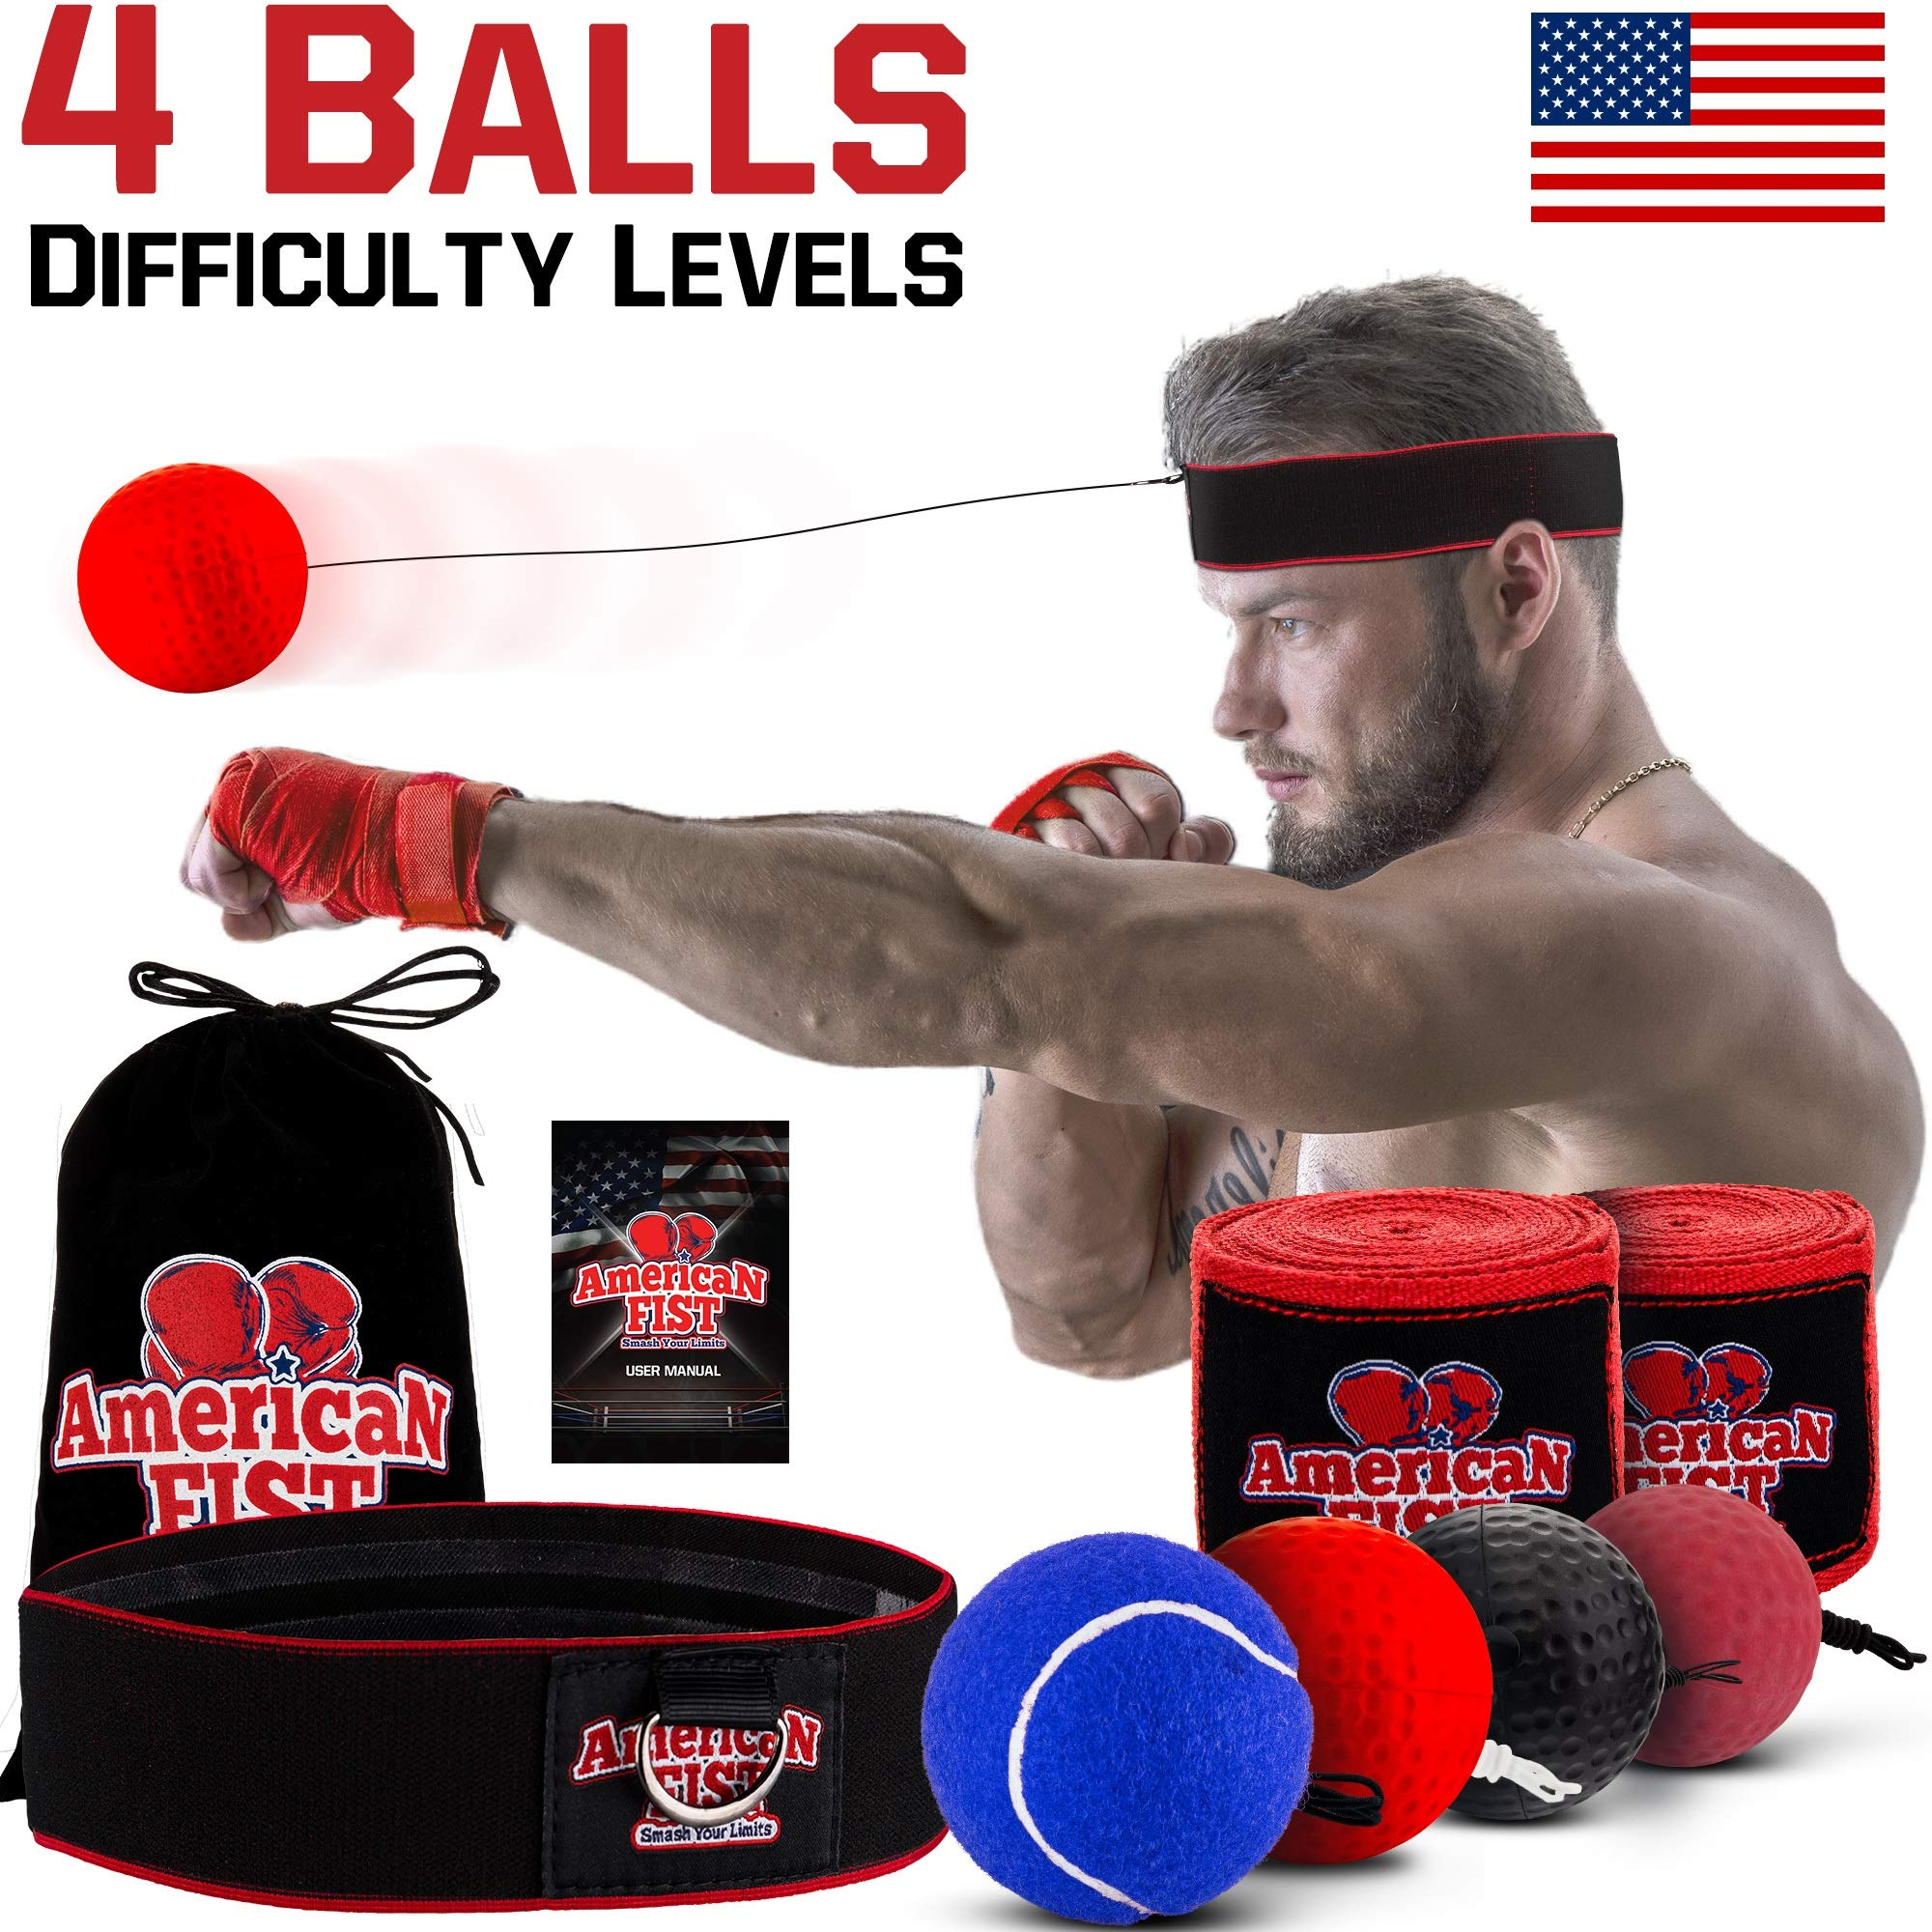 Boxing Reflex Ball Set, 4 Difficulty Level Training Balls On String, Punching Fight React Head Ball with Headband, Speed Hand Eye Reaction and Coordination Boxing Equipment For Kids And Adults by American Fist